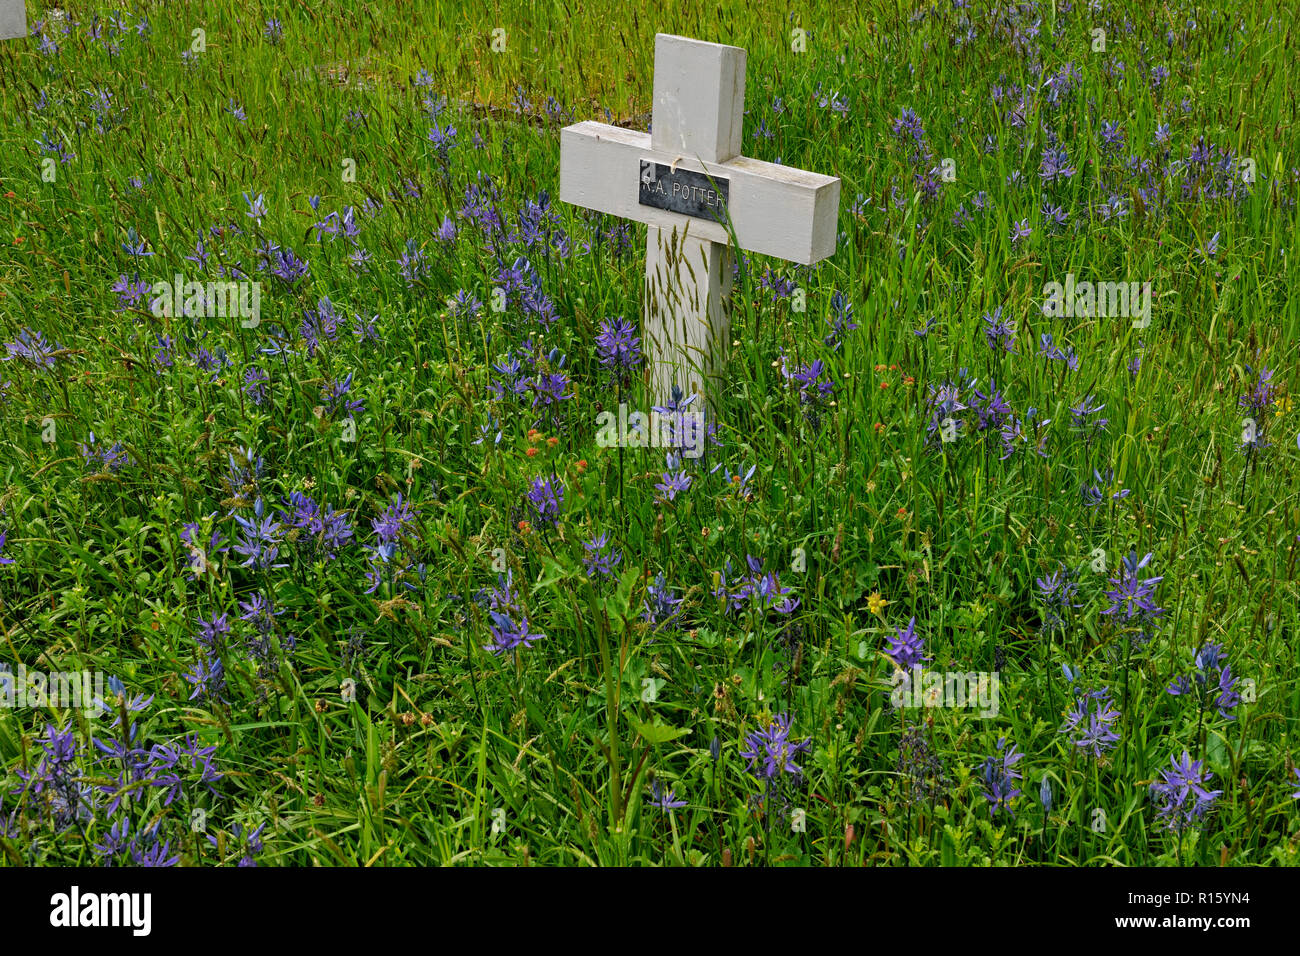 Cemetery and First World War grave markers in Metchosin Heritage Church grounds, Metchosin, BC, Canada - Stock Image